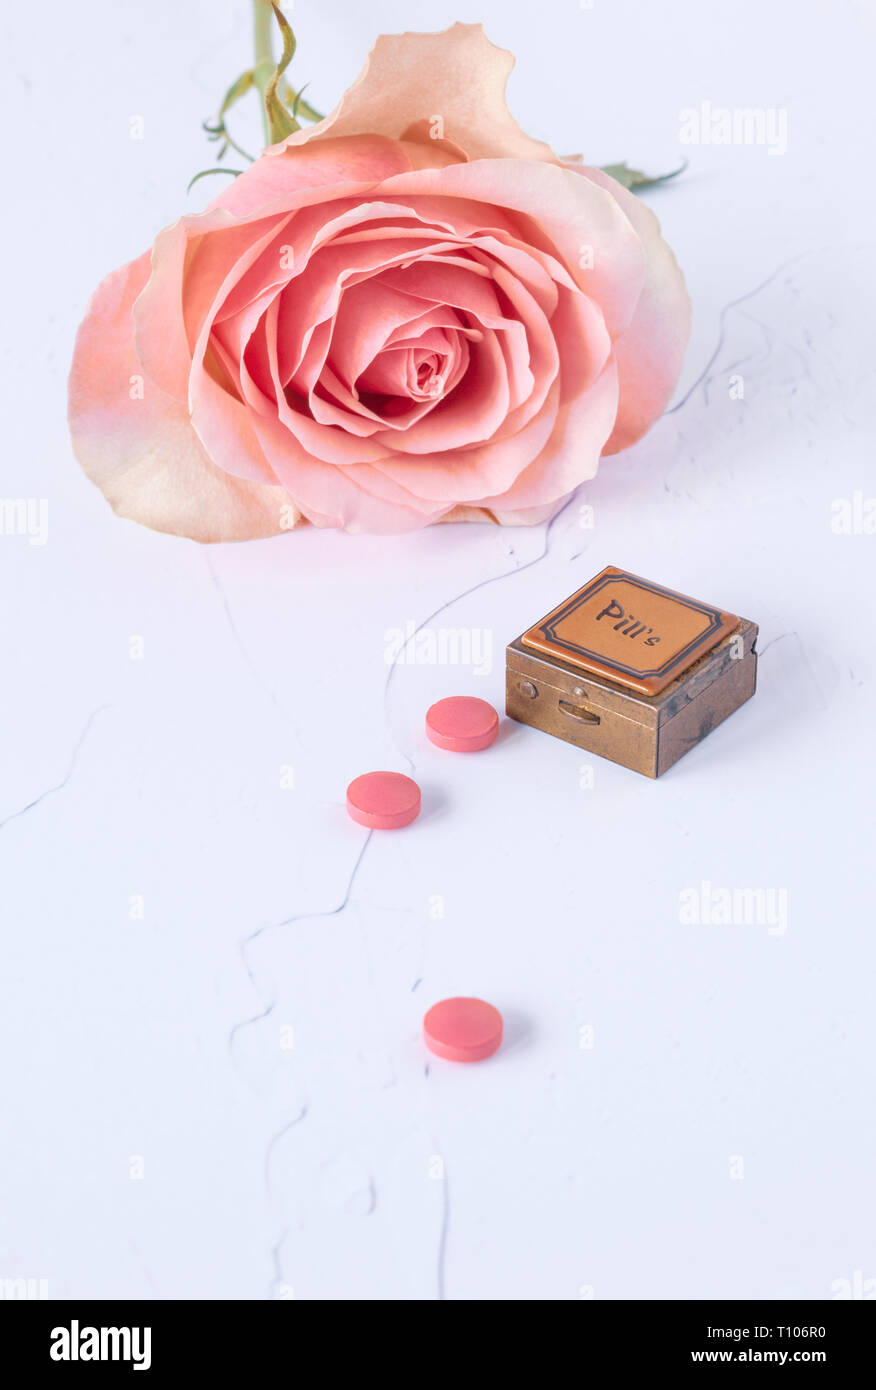 One pink rose with pillbox on white paint background - Stock Image